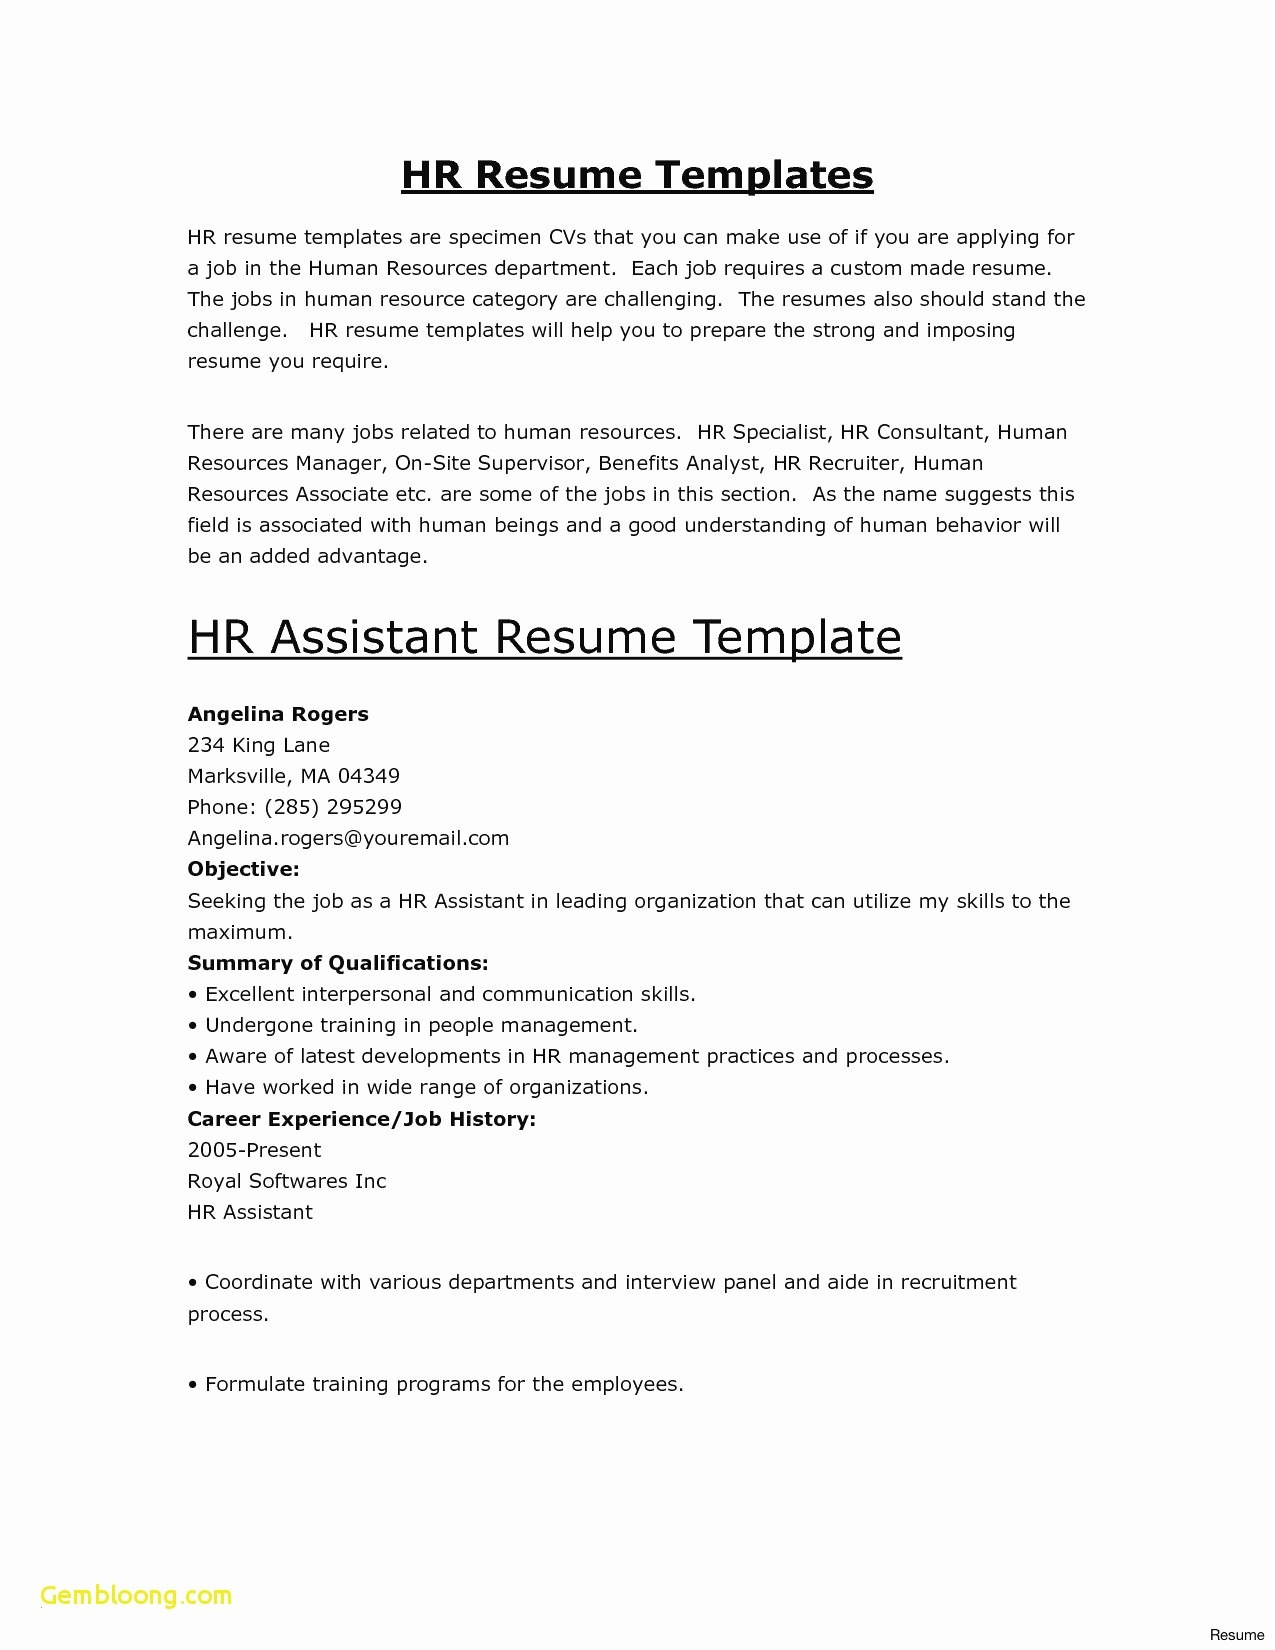 yoga teacher resume template little experience example-Teacher Resume Template Download Awesome Yoga Teacher Resume Template Little Experience Myacereporter 1-o